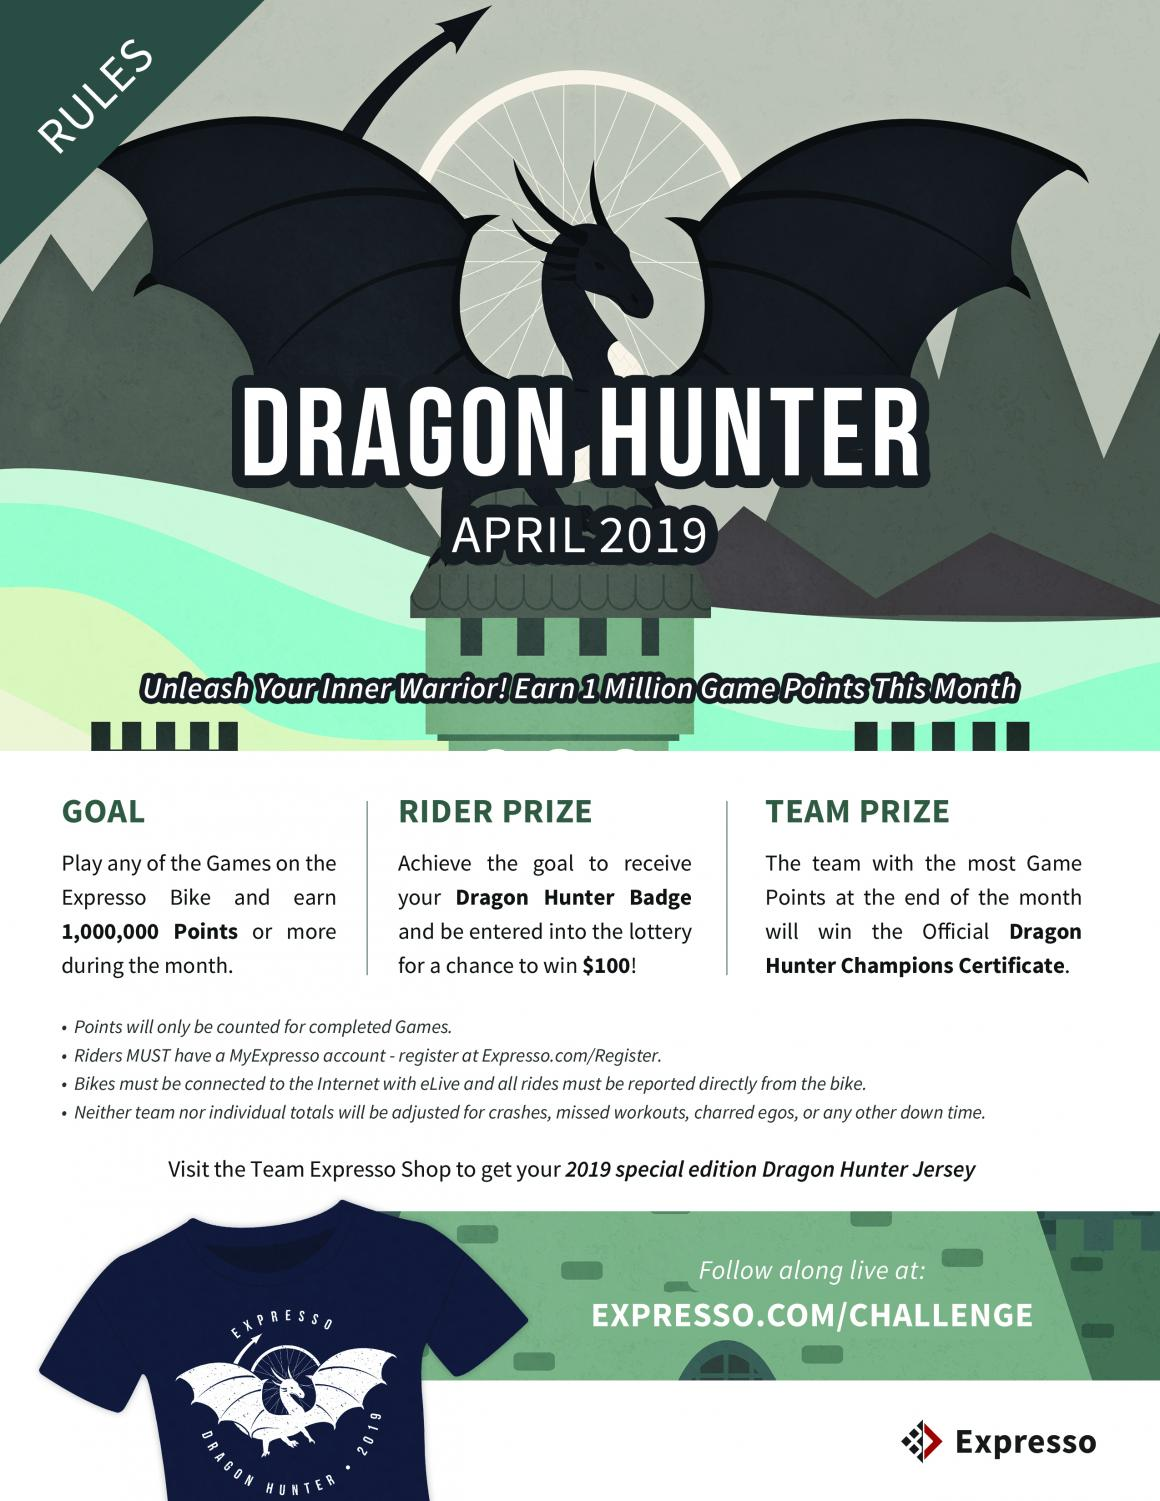 Dragon Hunter's April contest promo poster. (via Expresso.com)